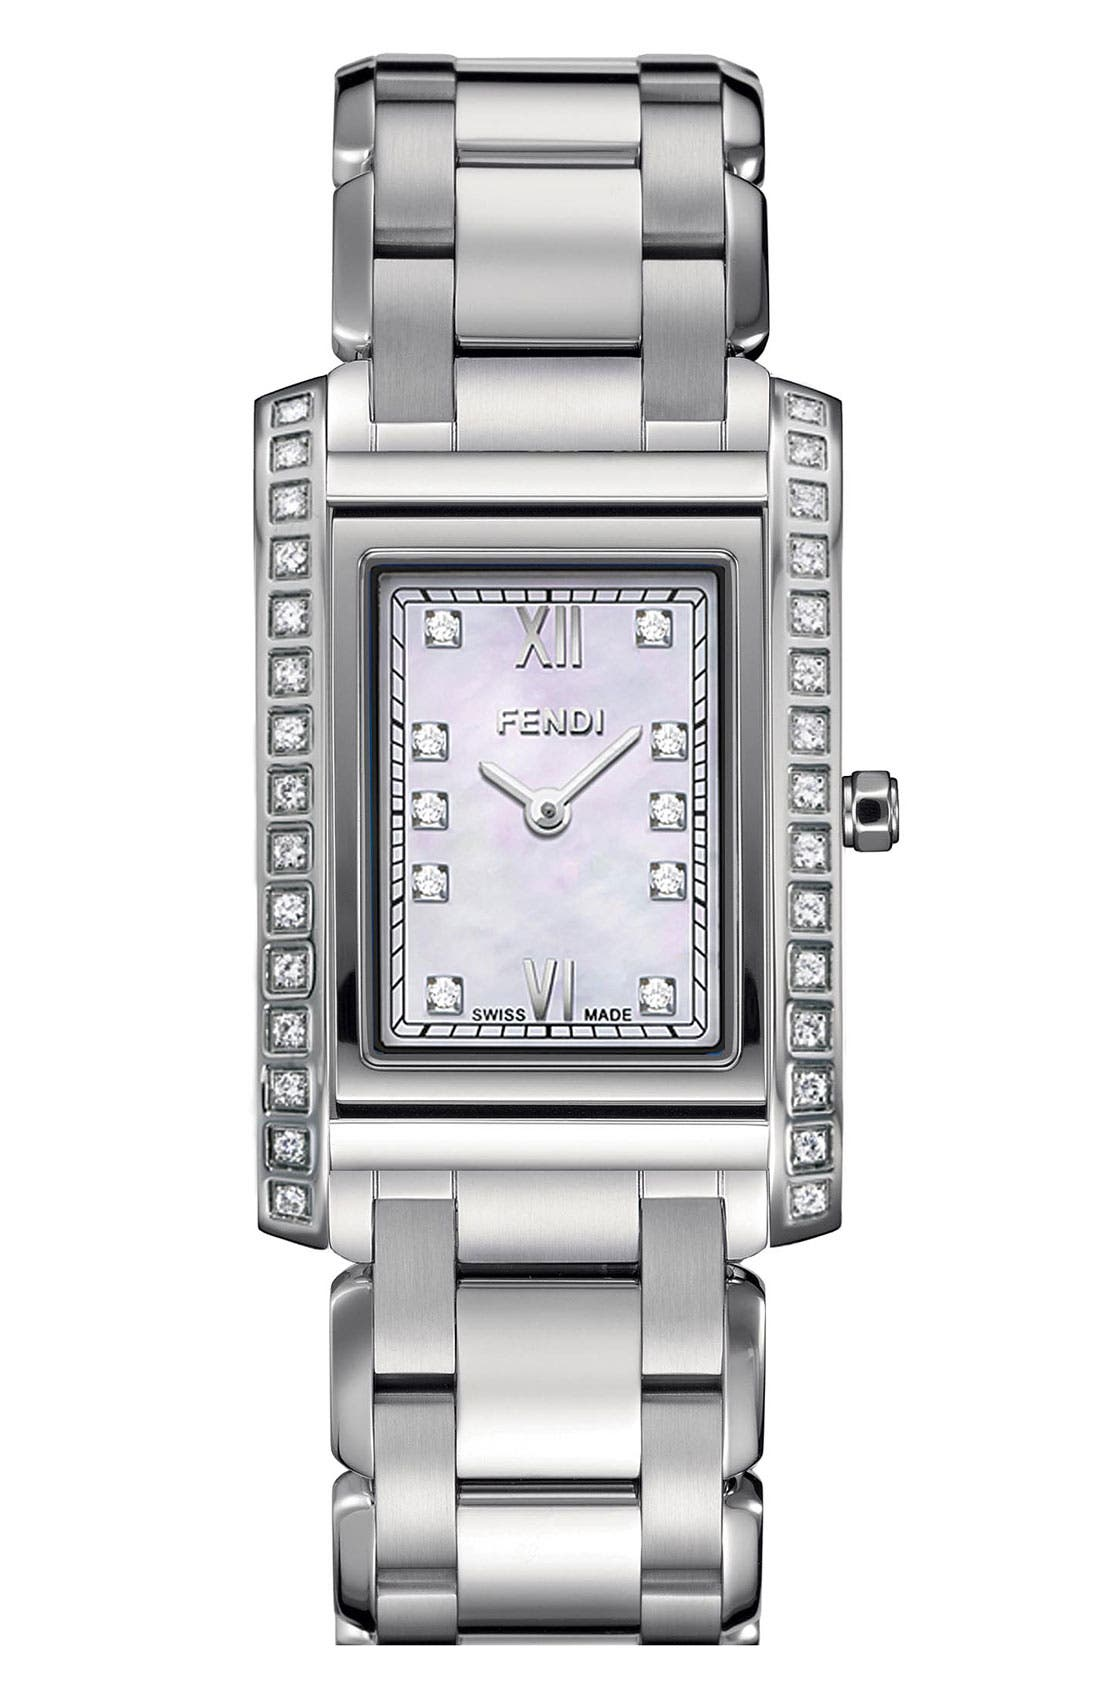 Main Image - Fendi 'Loop - Small' Diamond Bracelet Watch, 21mm x 34mm